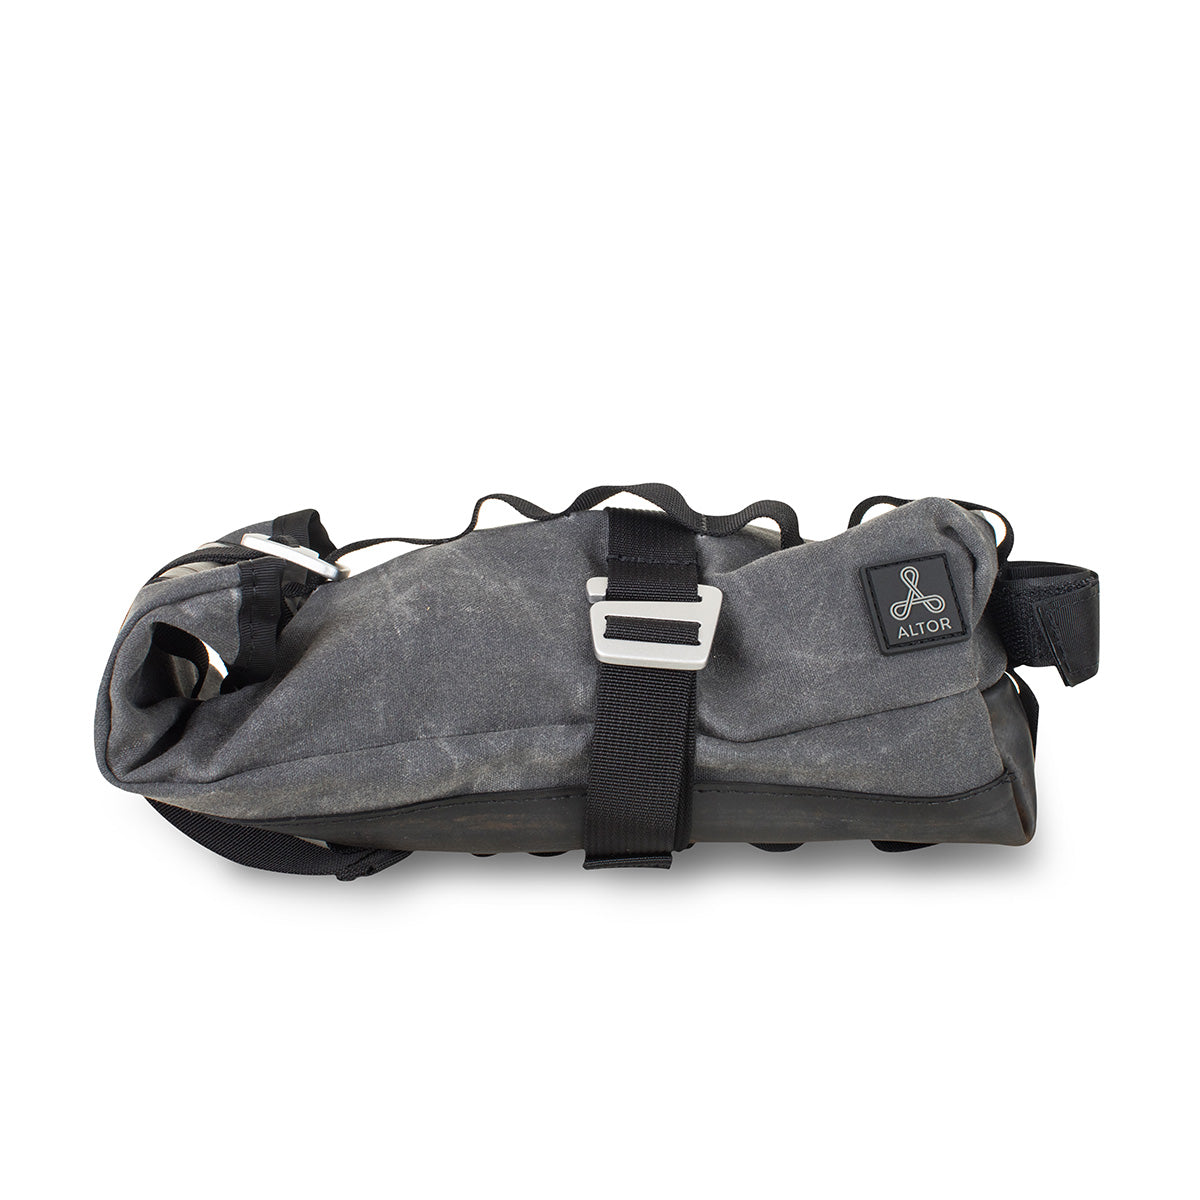 APEX Saddle Bag - Altor Locks